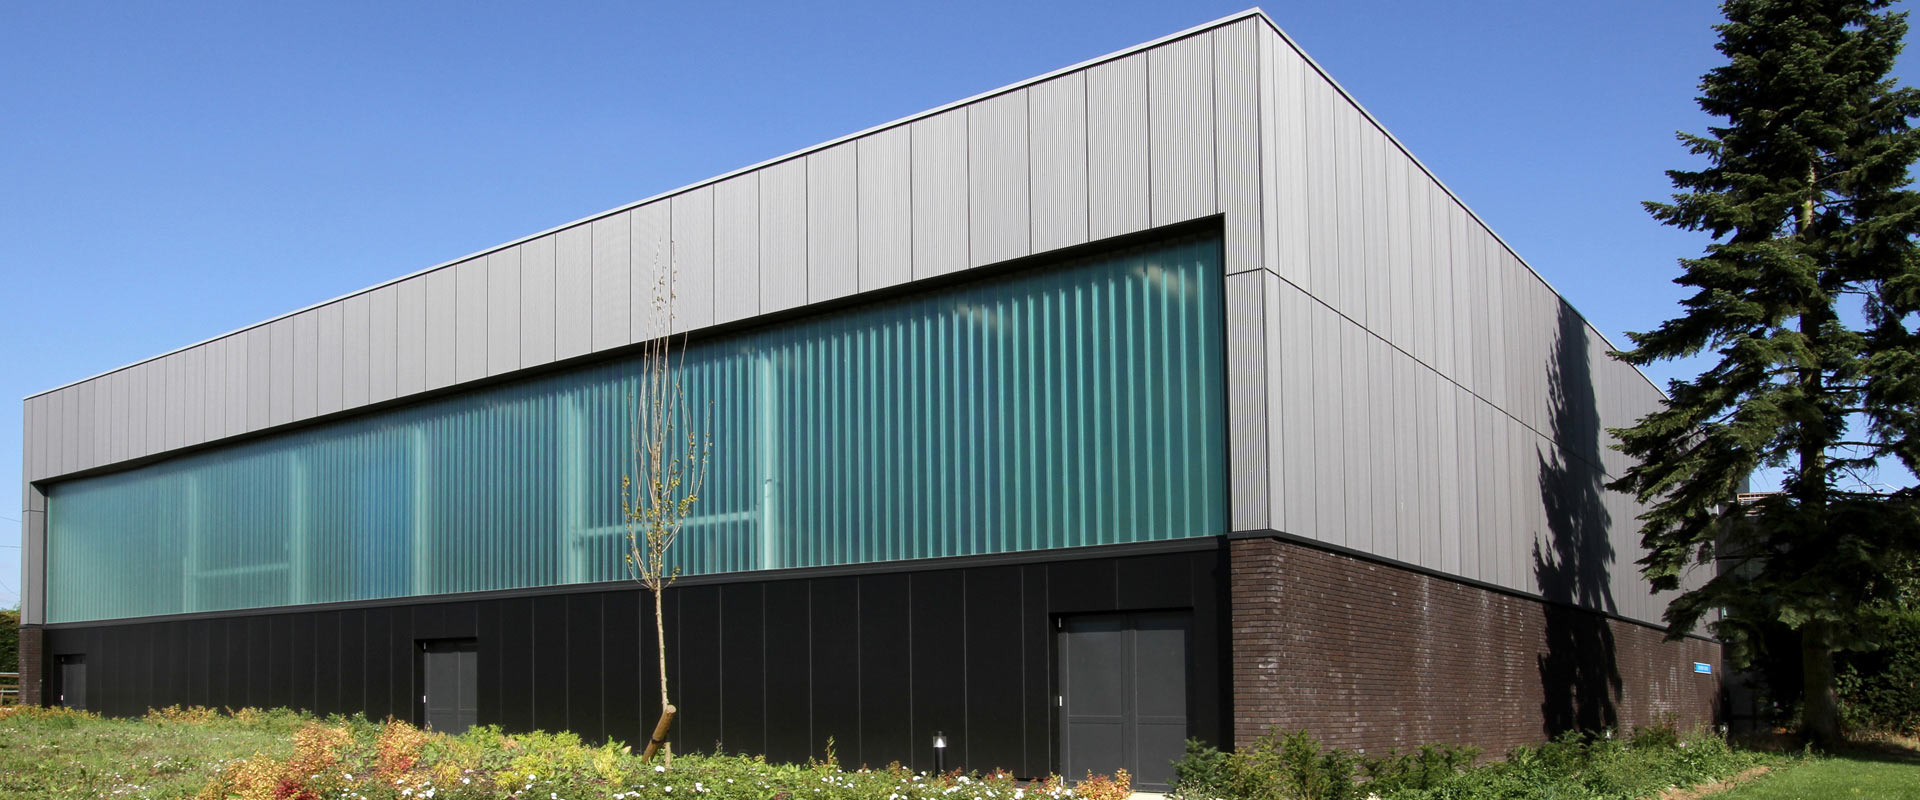 Rhino Exteriors | Cladding & Roofing Solutions